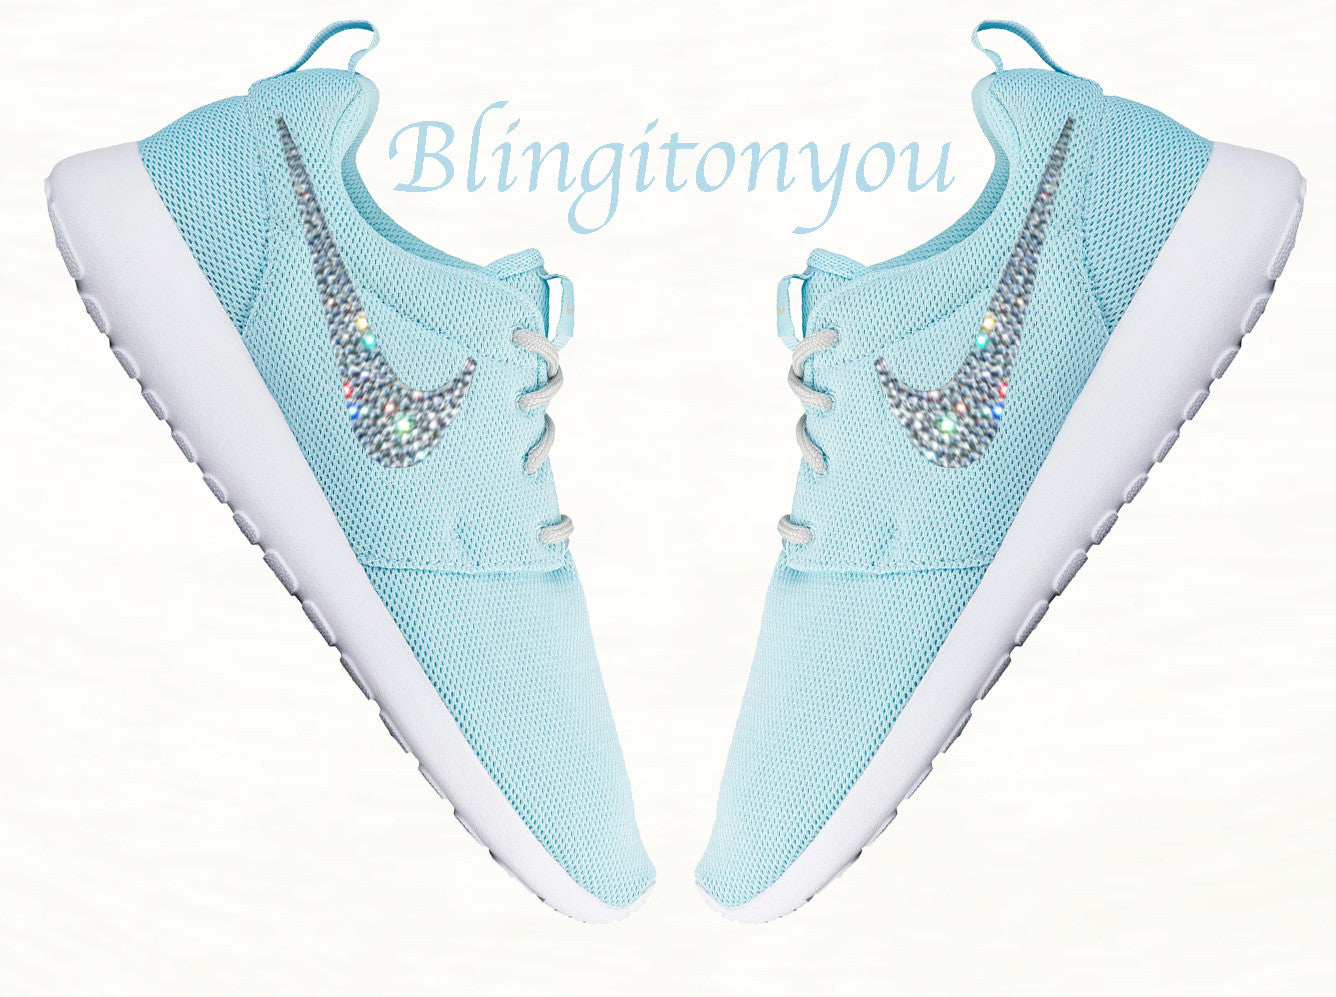 b456a2ee3e26 Swarovski Nike Roshe One Light Blue Women s Shoes Customized with Clear  Swarovski Crystal Rhinestones